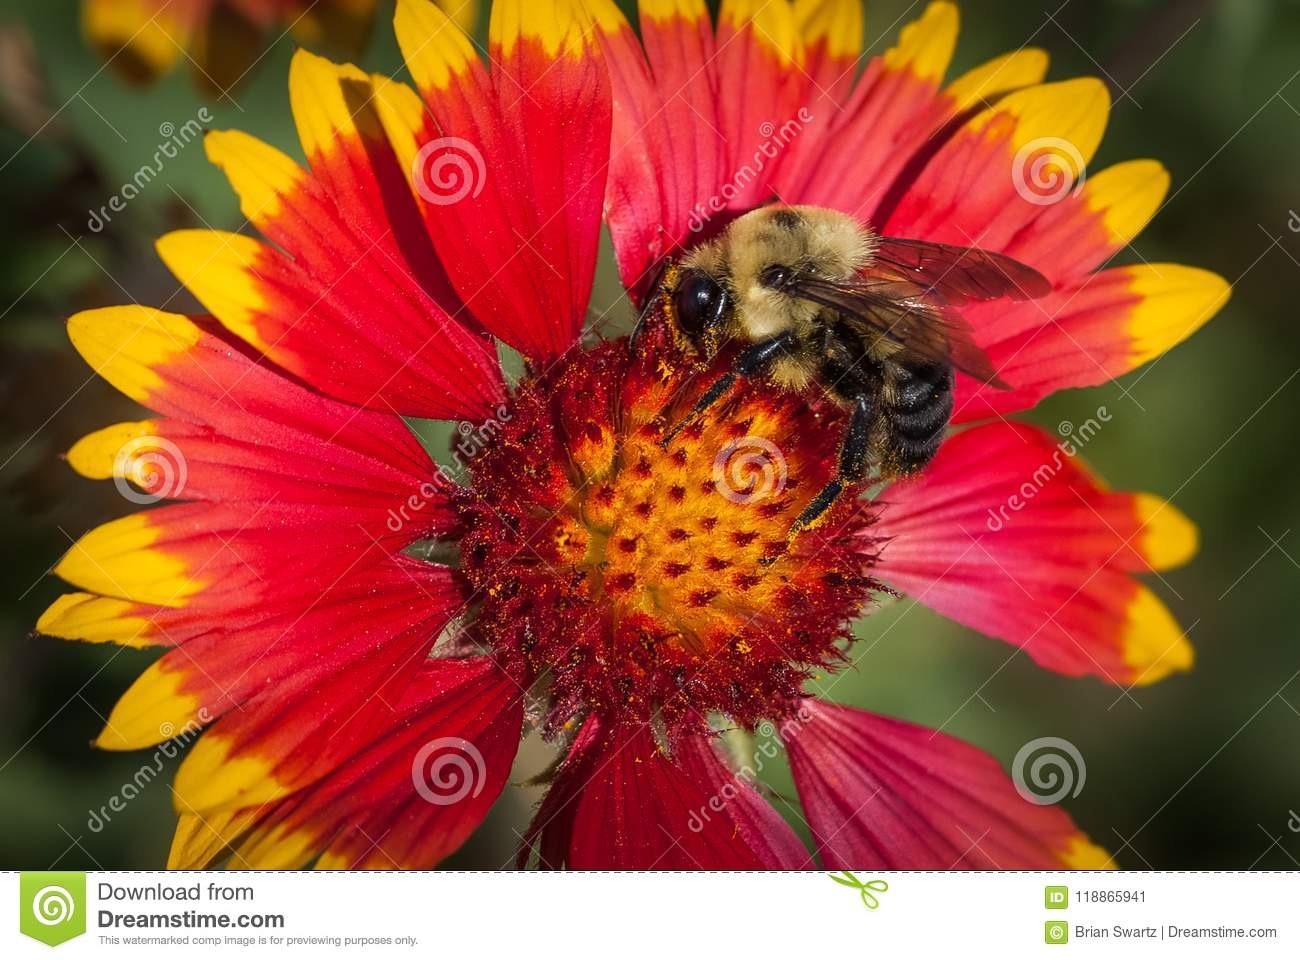 Indian Blanket Flower with a Bumble Bee